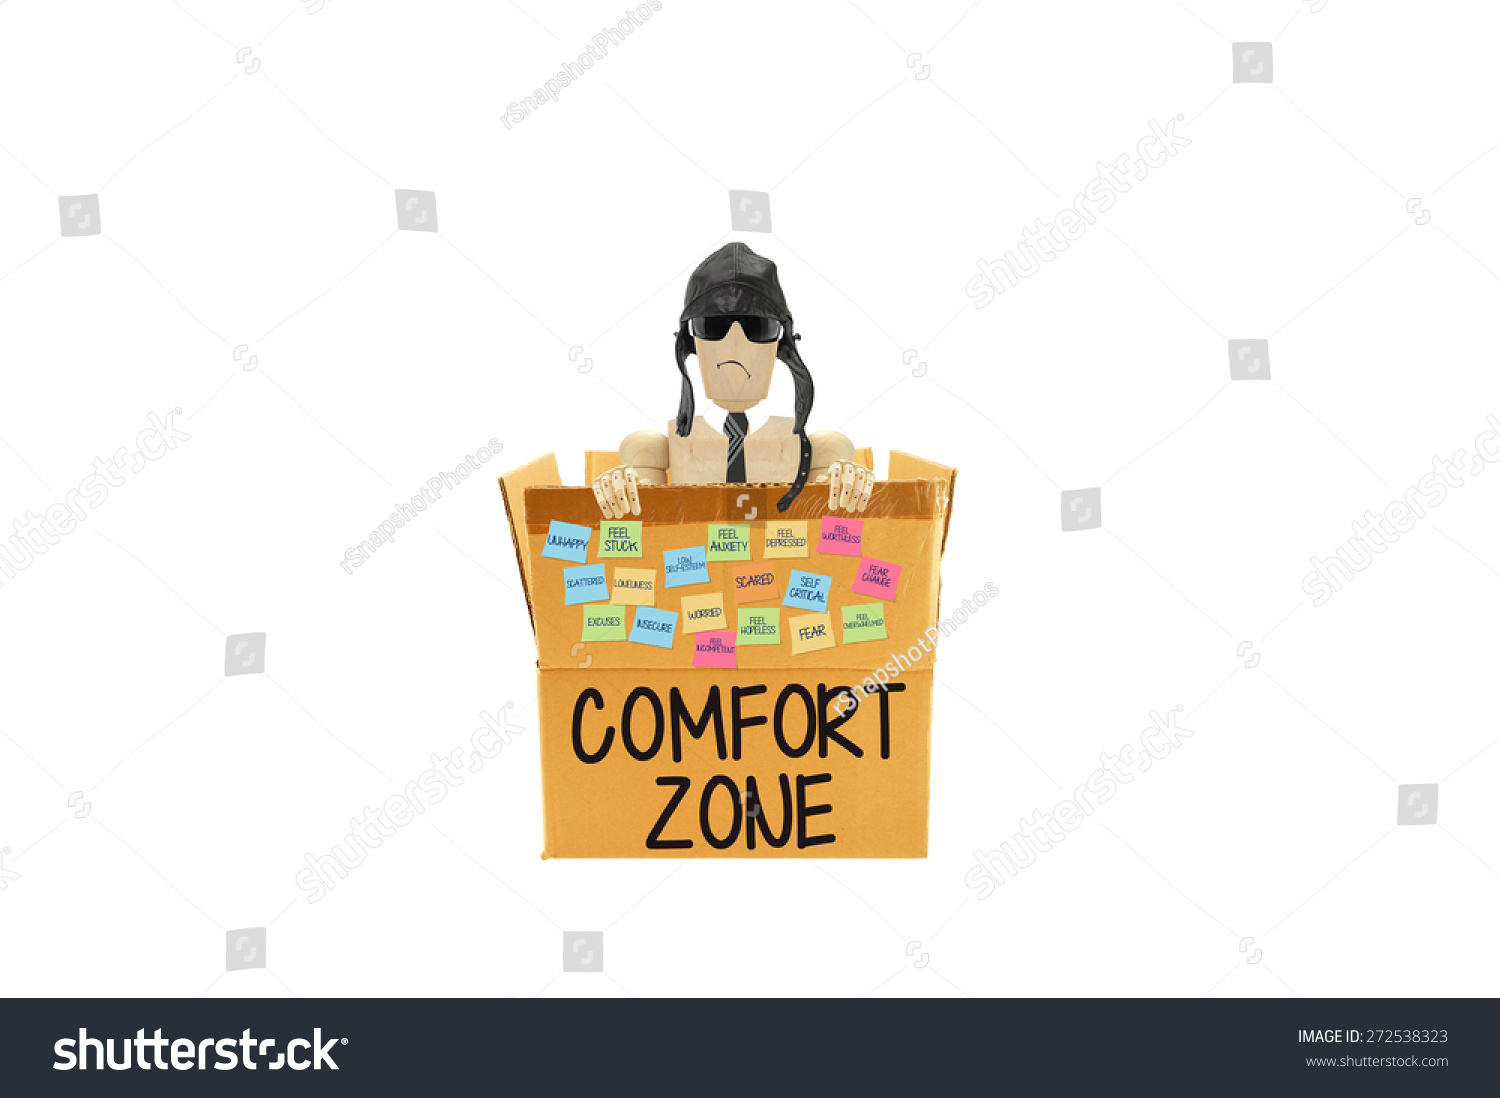 comfort zone mannequin frowning in box post it notes fear anxiety depressed unhappy excuses. Black Bedroom Furniture Sets. Home Design Ideas